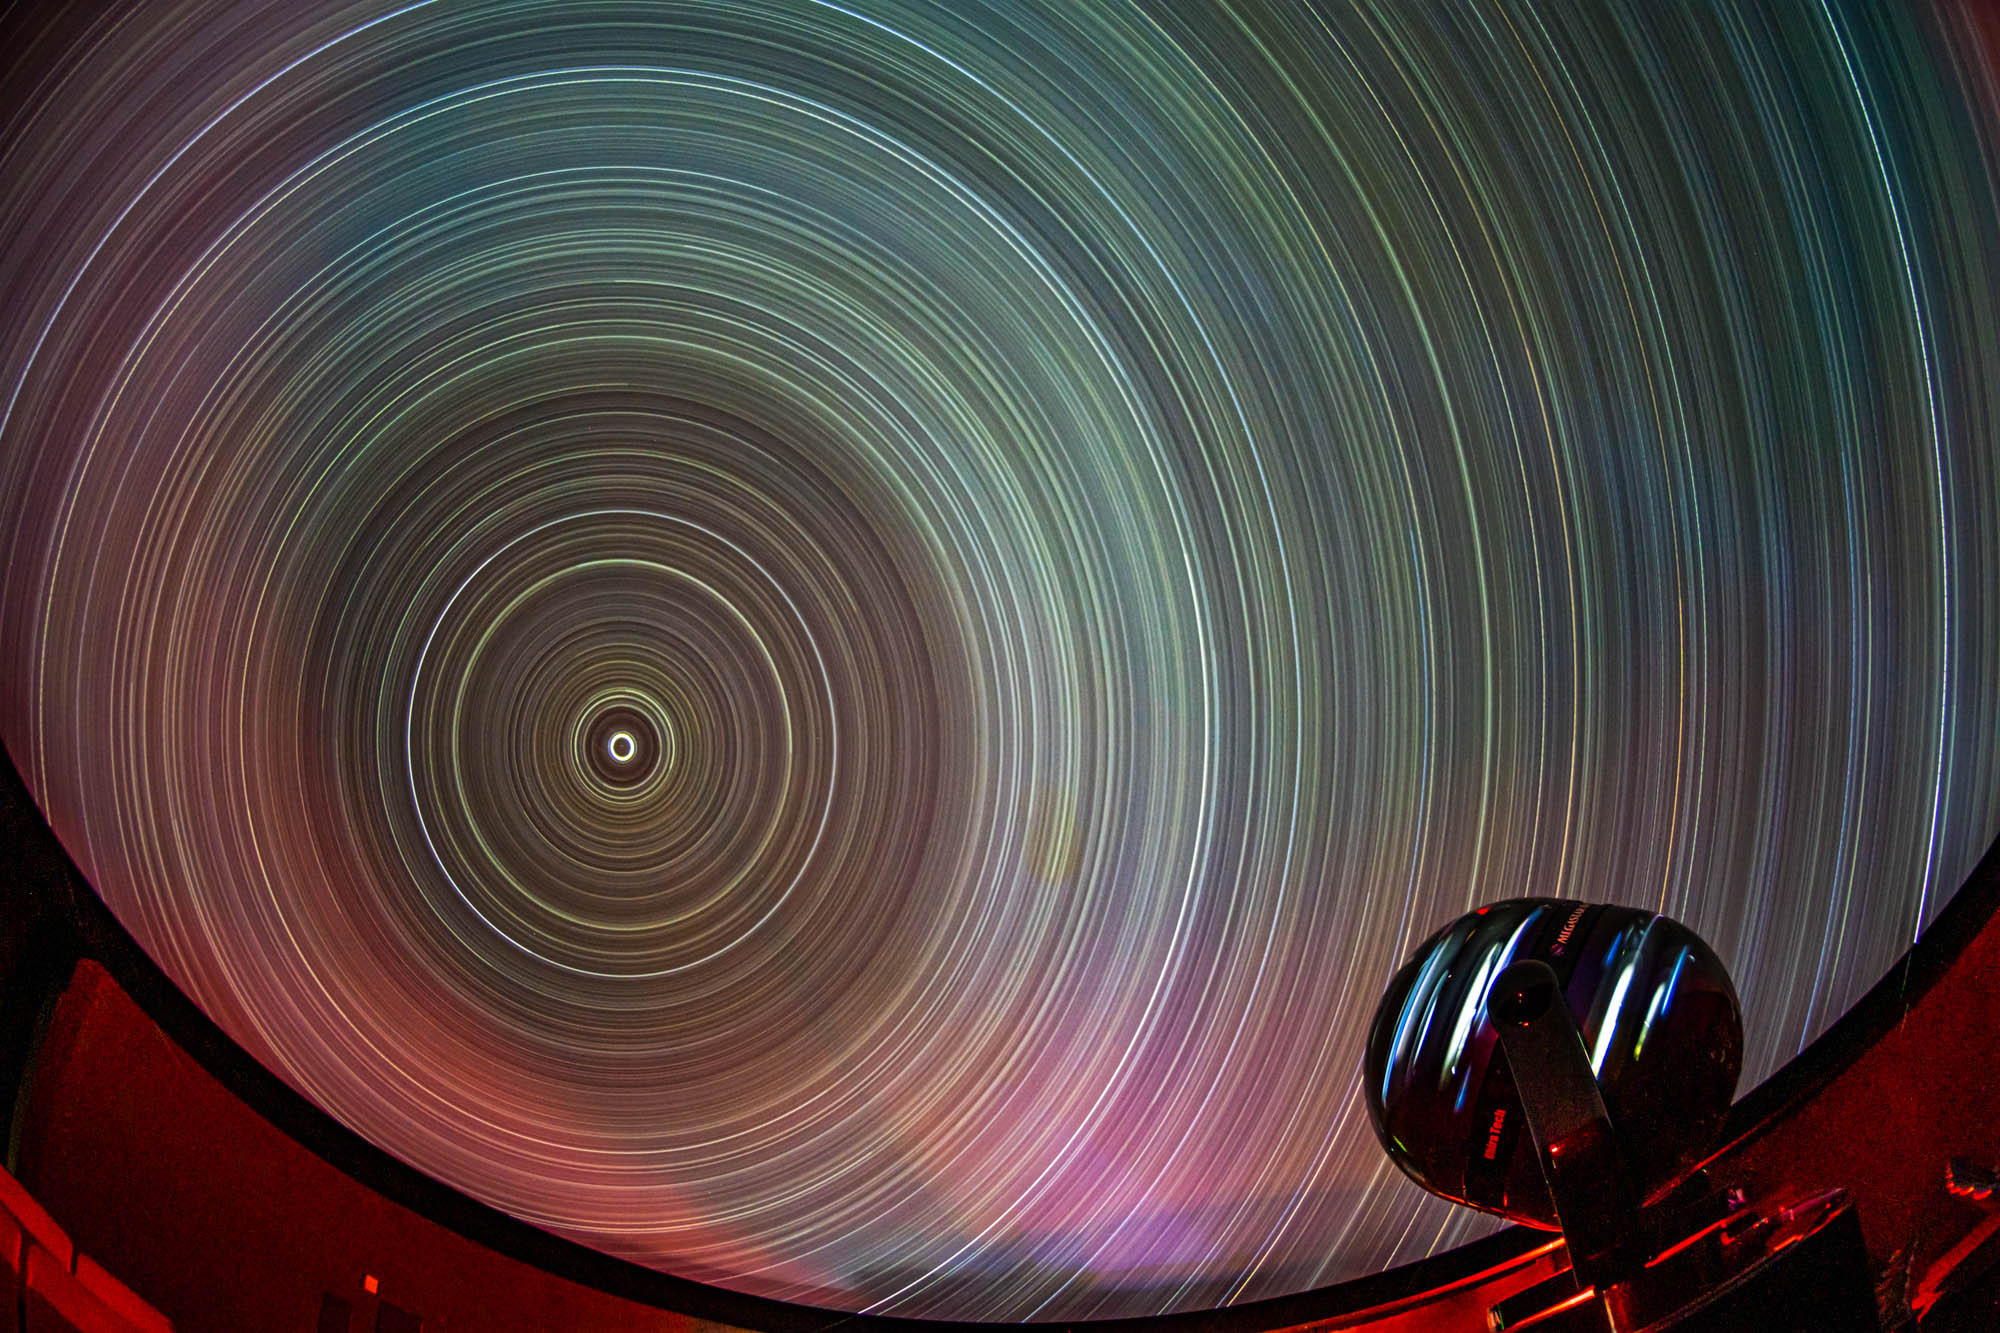 Planetarium Projection Systems: Delivering Awe and Wonder